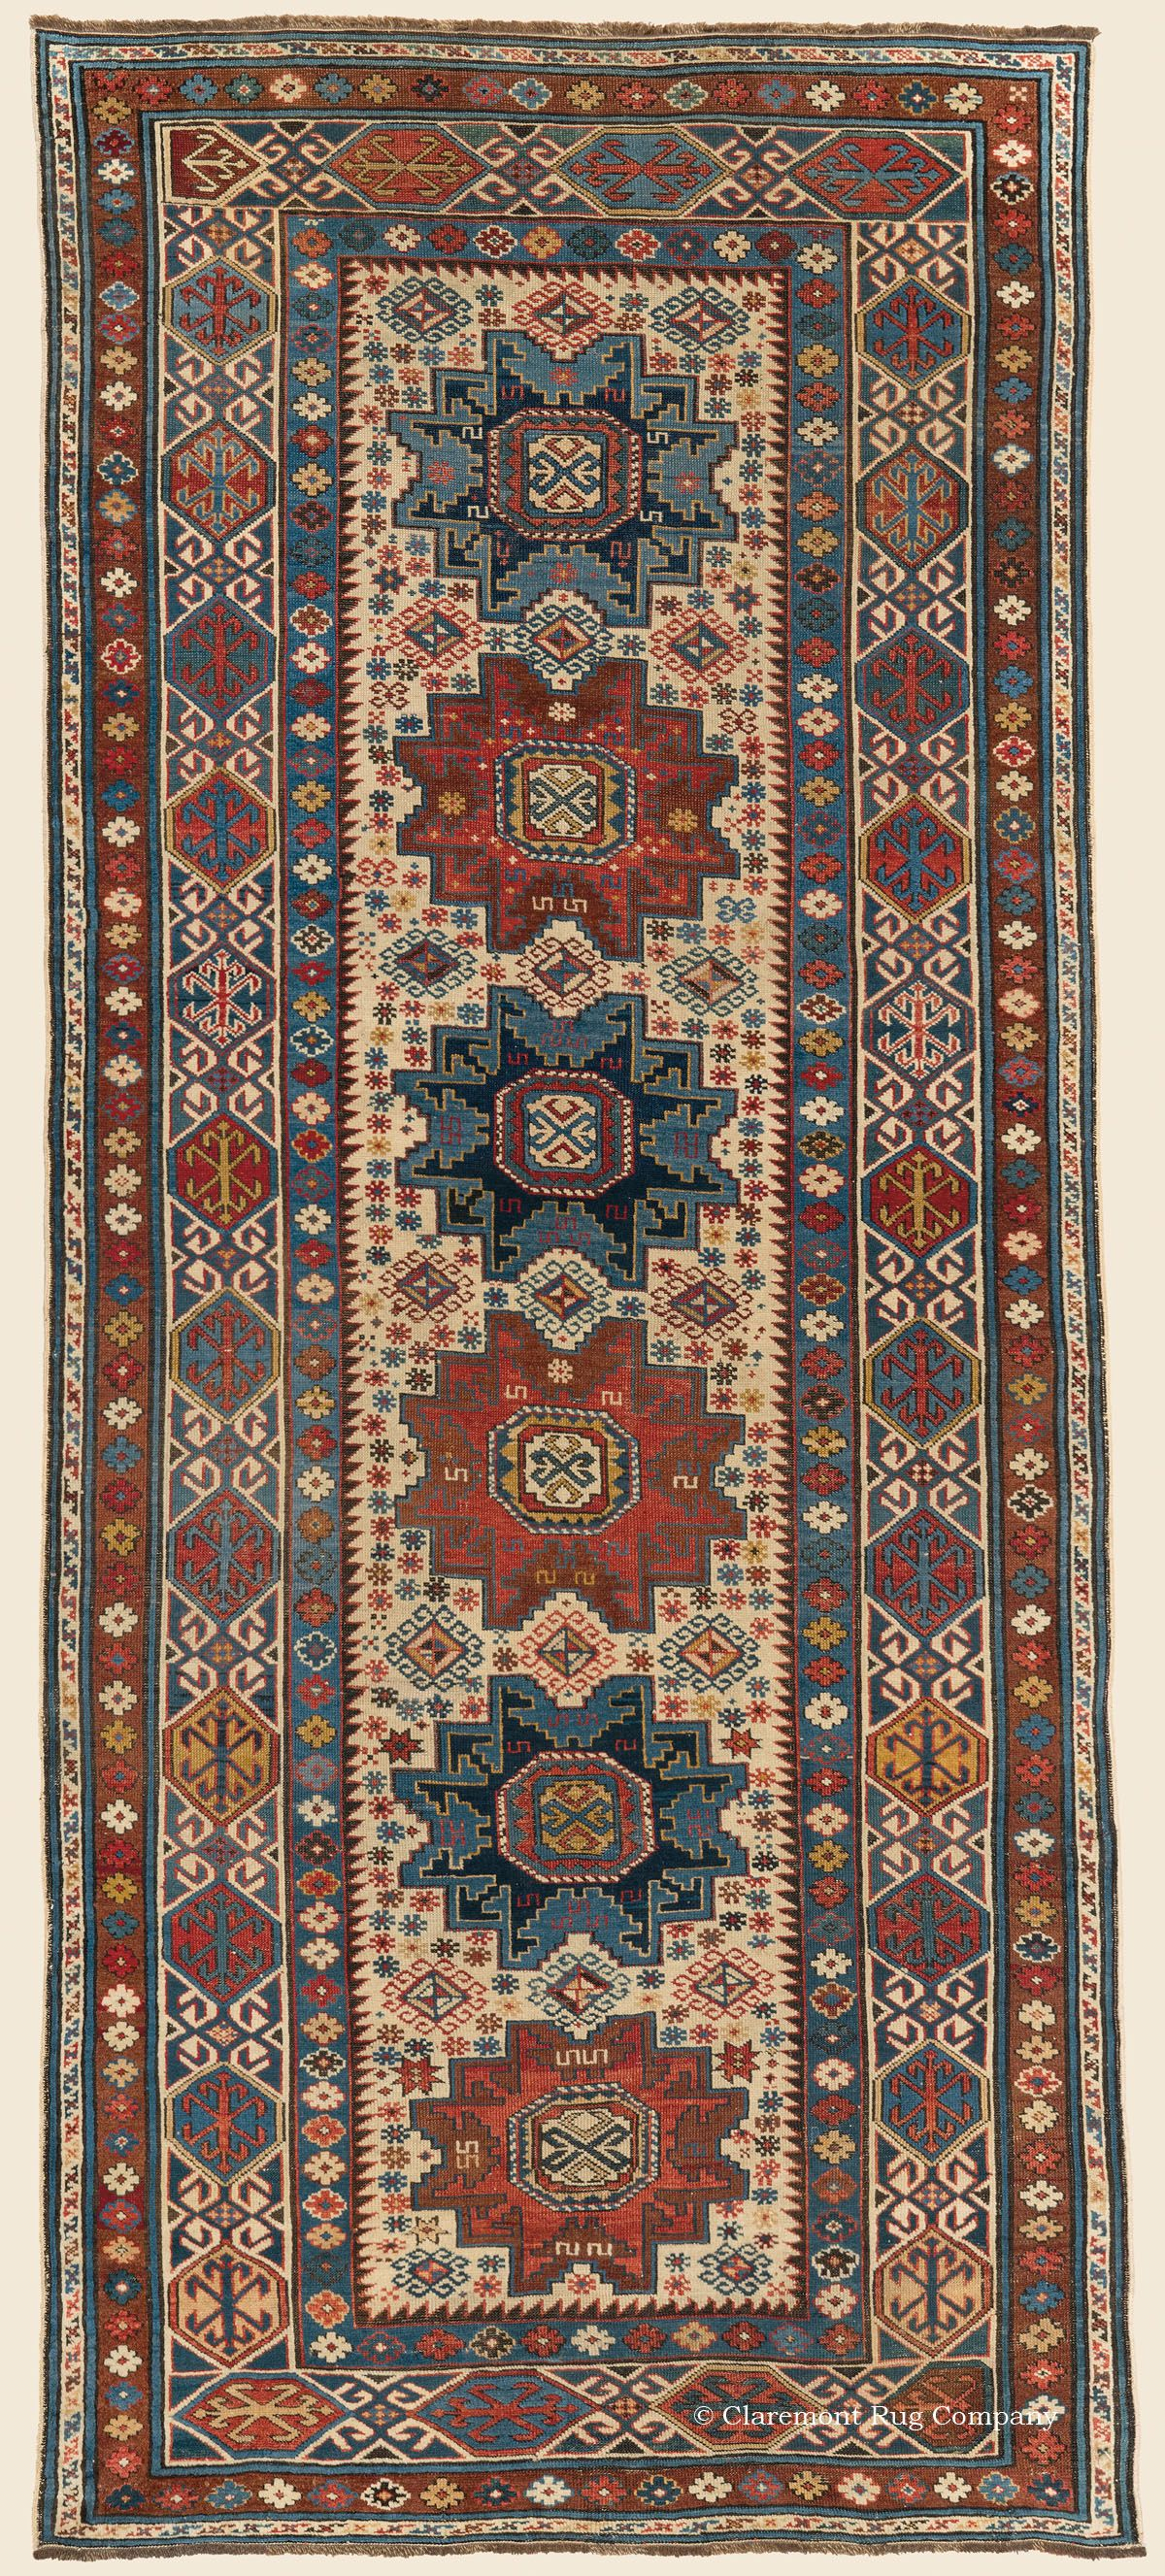 Exquisite 19th Early 20th Century Rugs From Tribal To City Oversize Carpets Elite San Francisco Bay Area Dealer Serving International Clientele